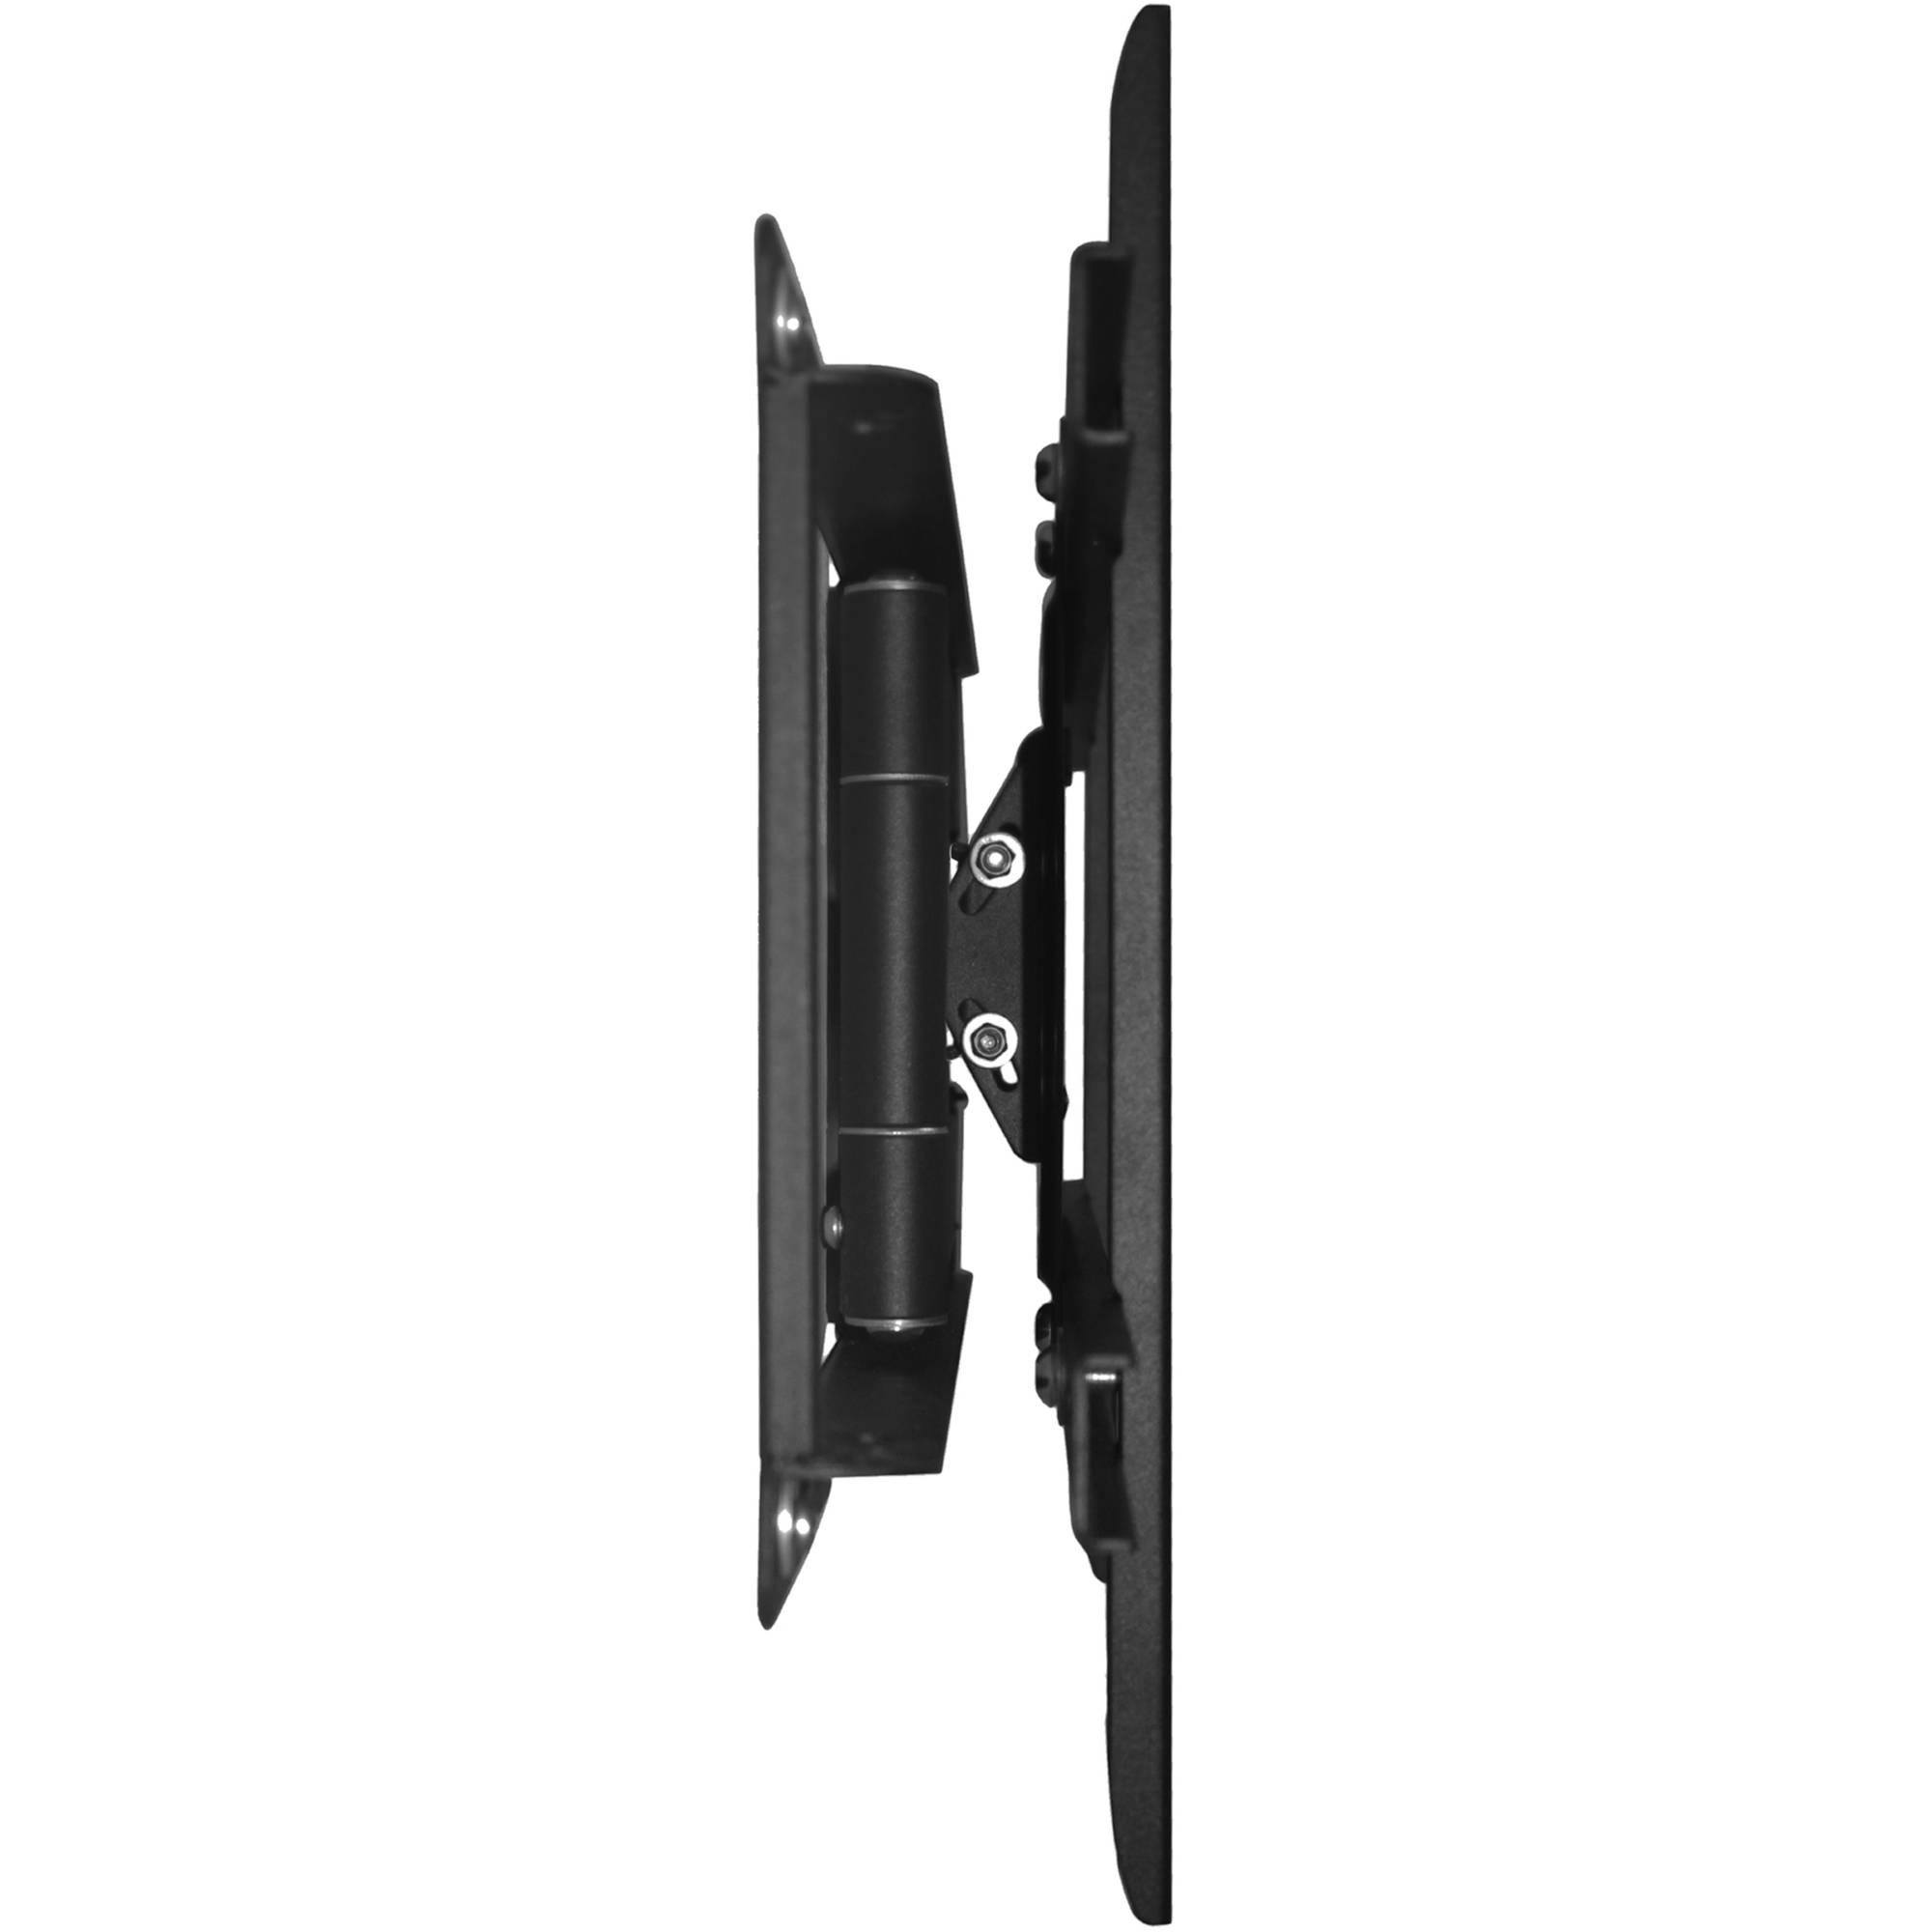 """55 Inch Tv Wall Mount Swivel Full Motion Tv Wall Mount For 19""""84"""" Tvs With Tilt And Swivel ."""